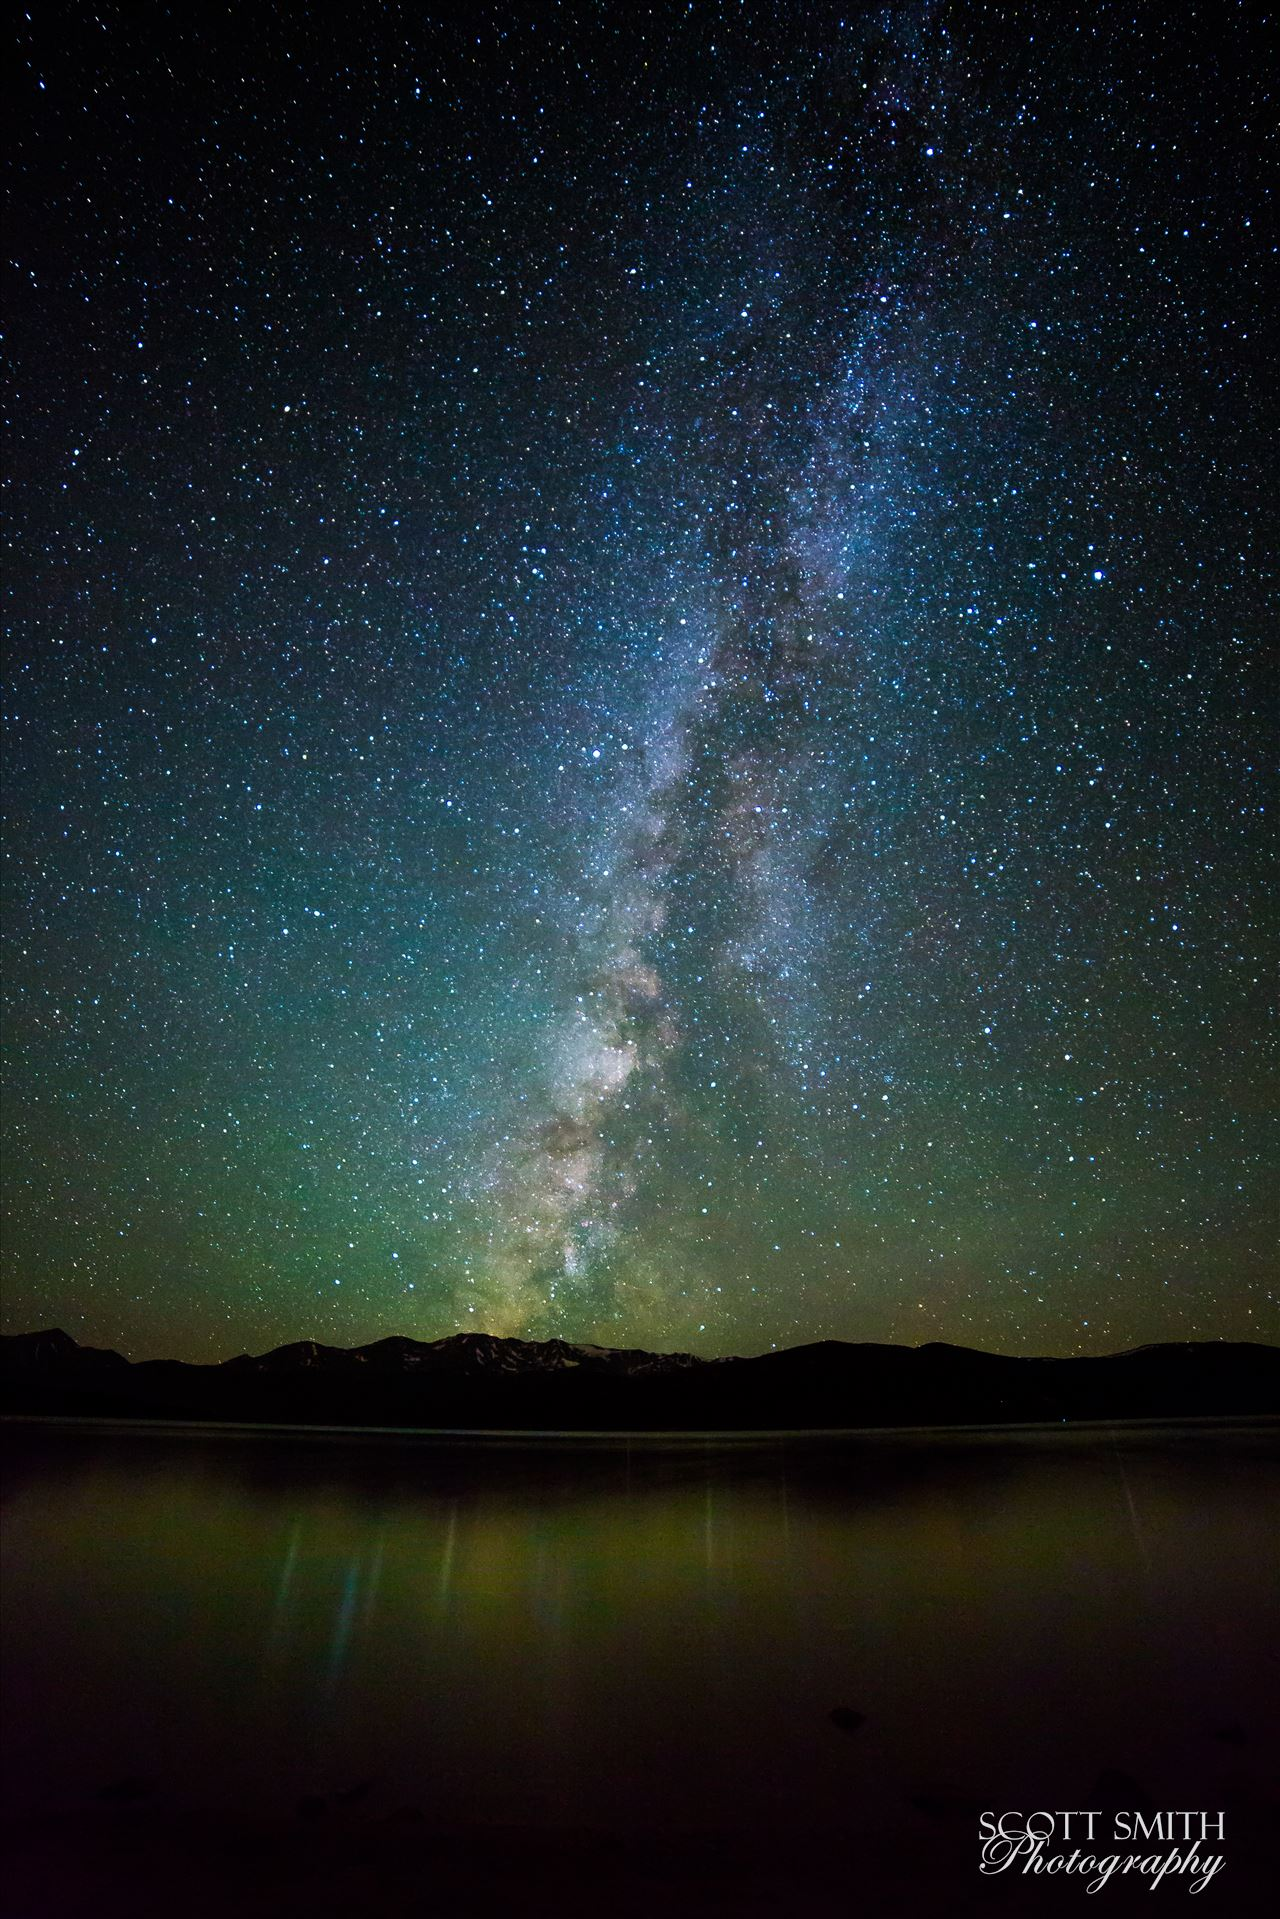 Milky Way over Turquoise Lake by Scott Smith on SnapThe